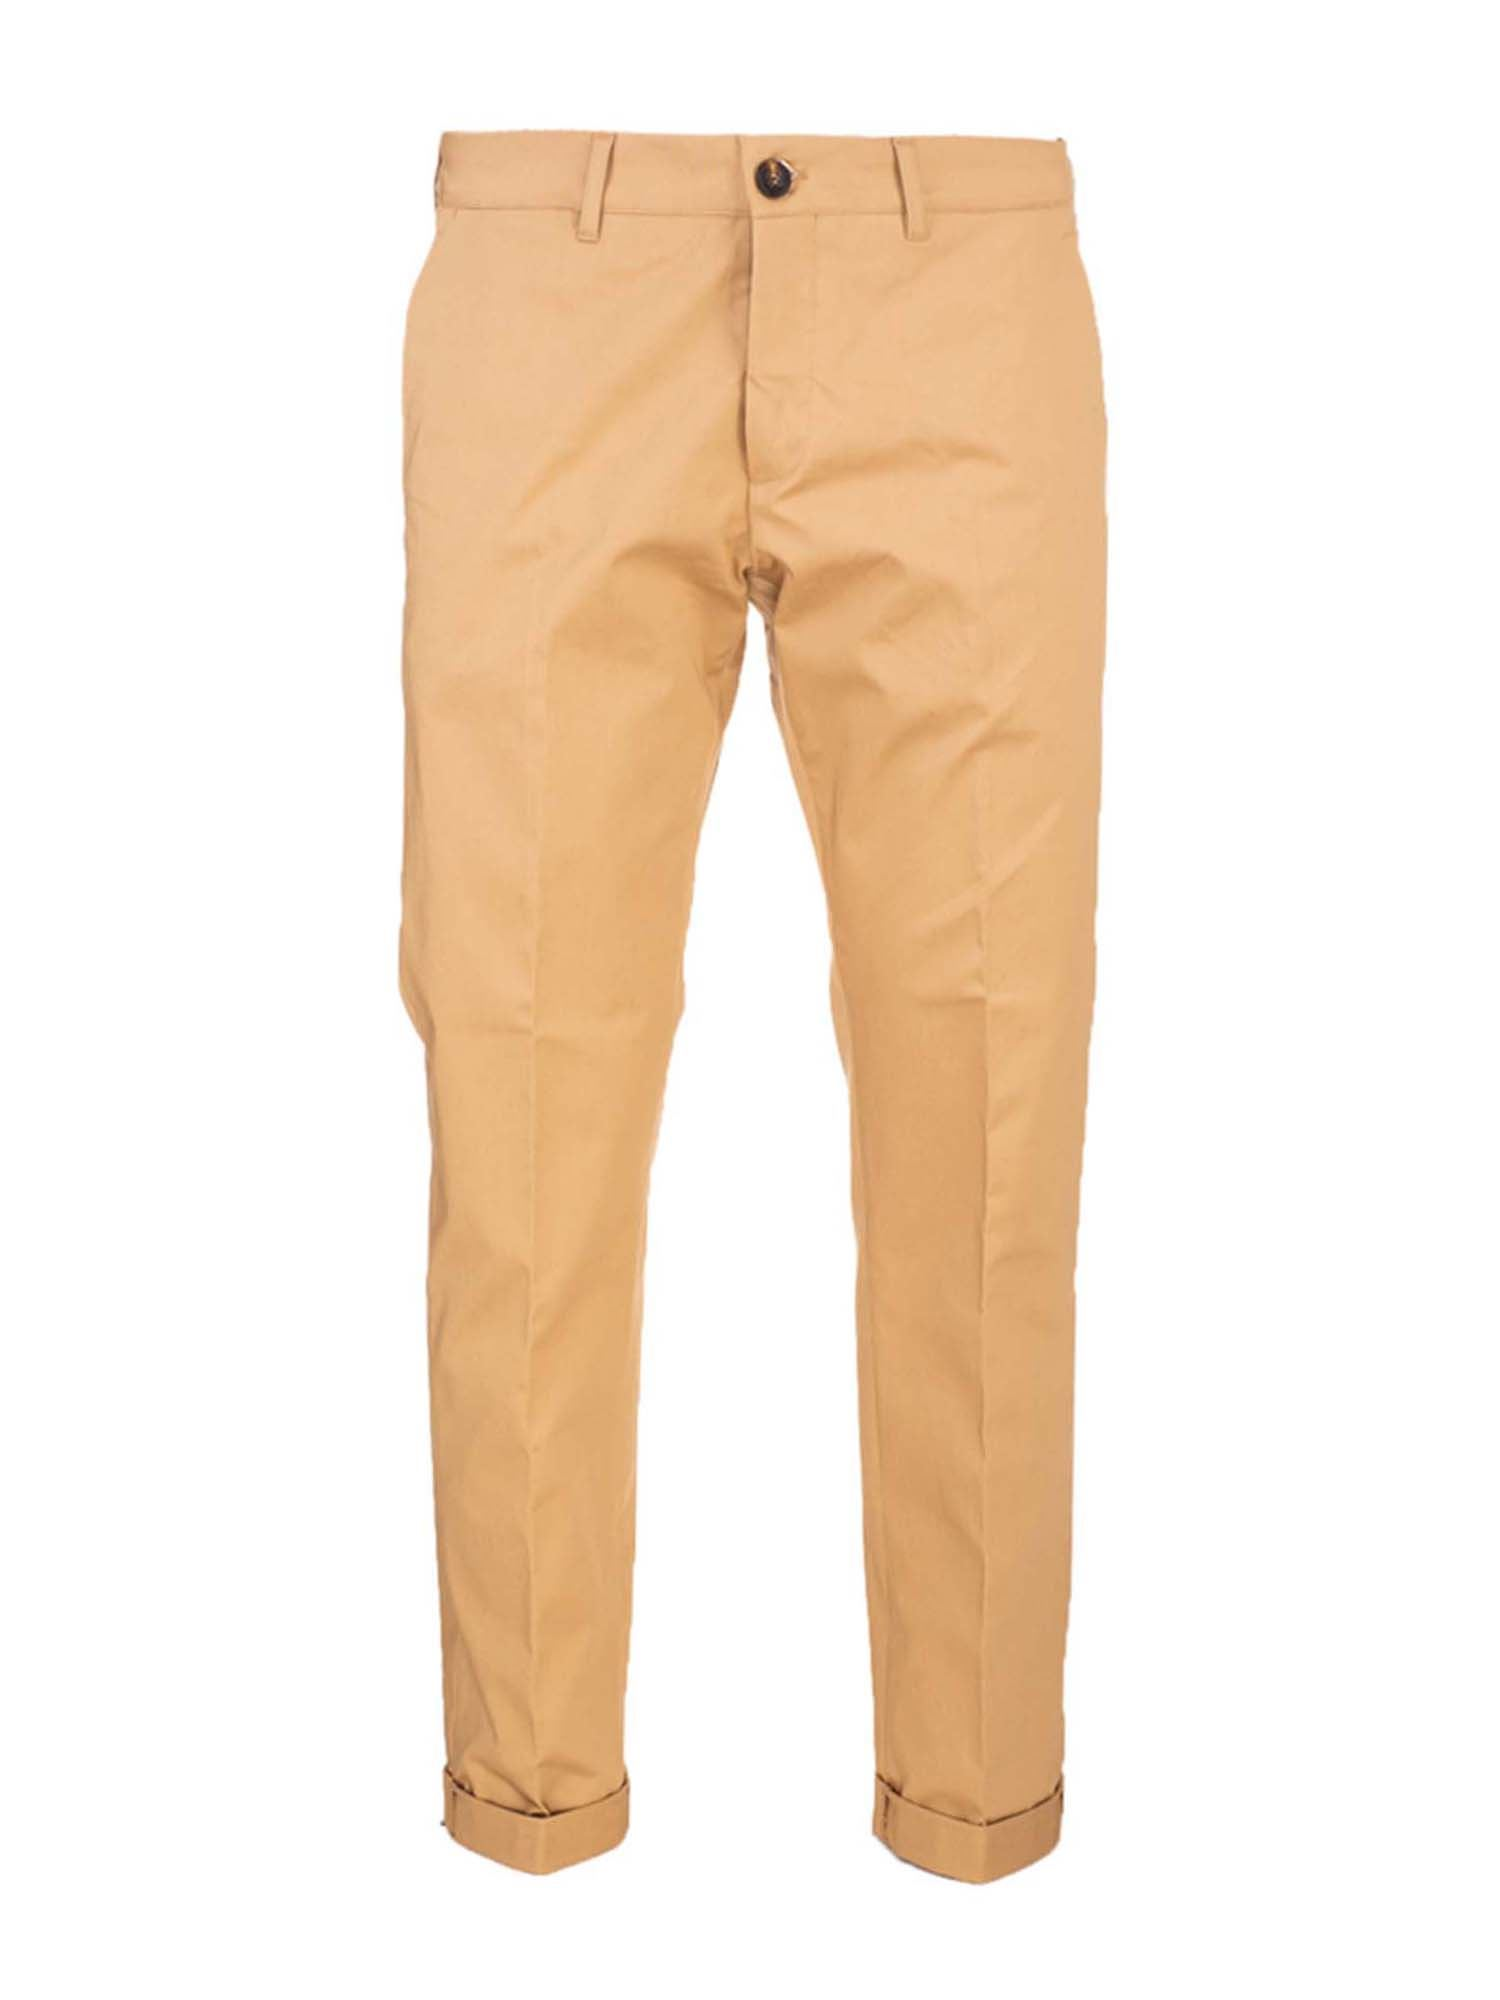 Golden Goose LOGO PANTS IN BEIGE